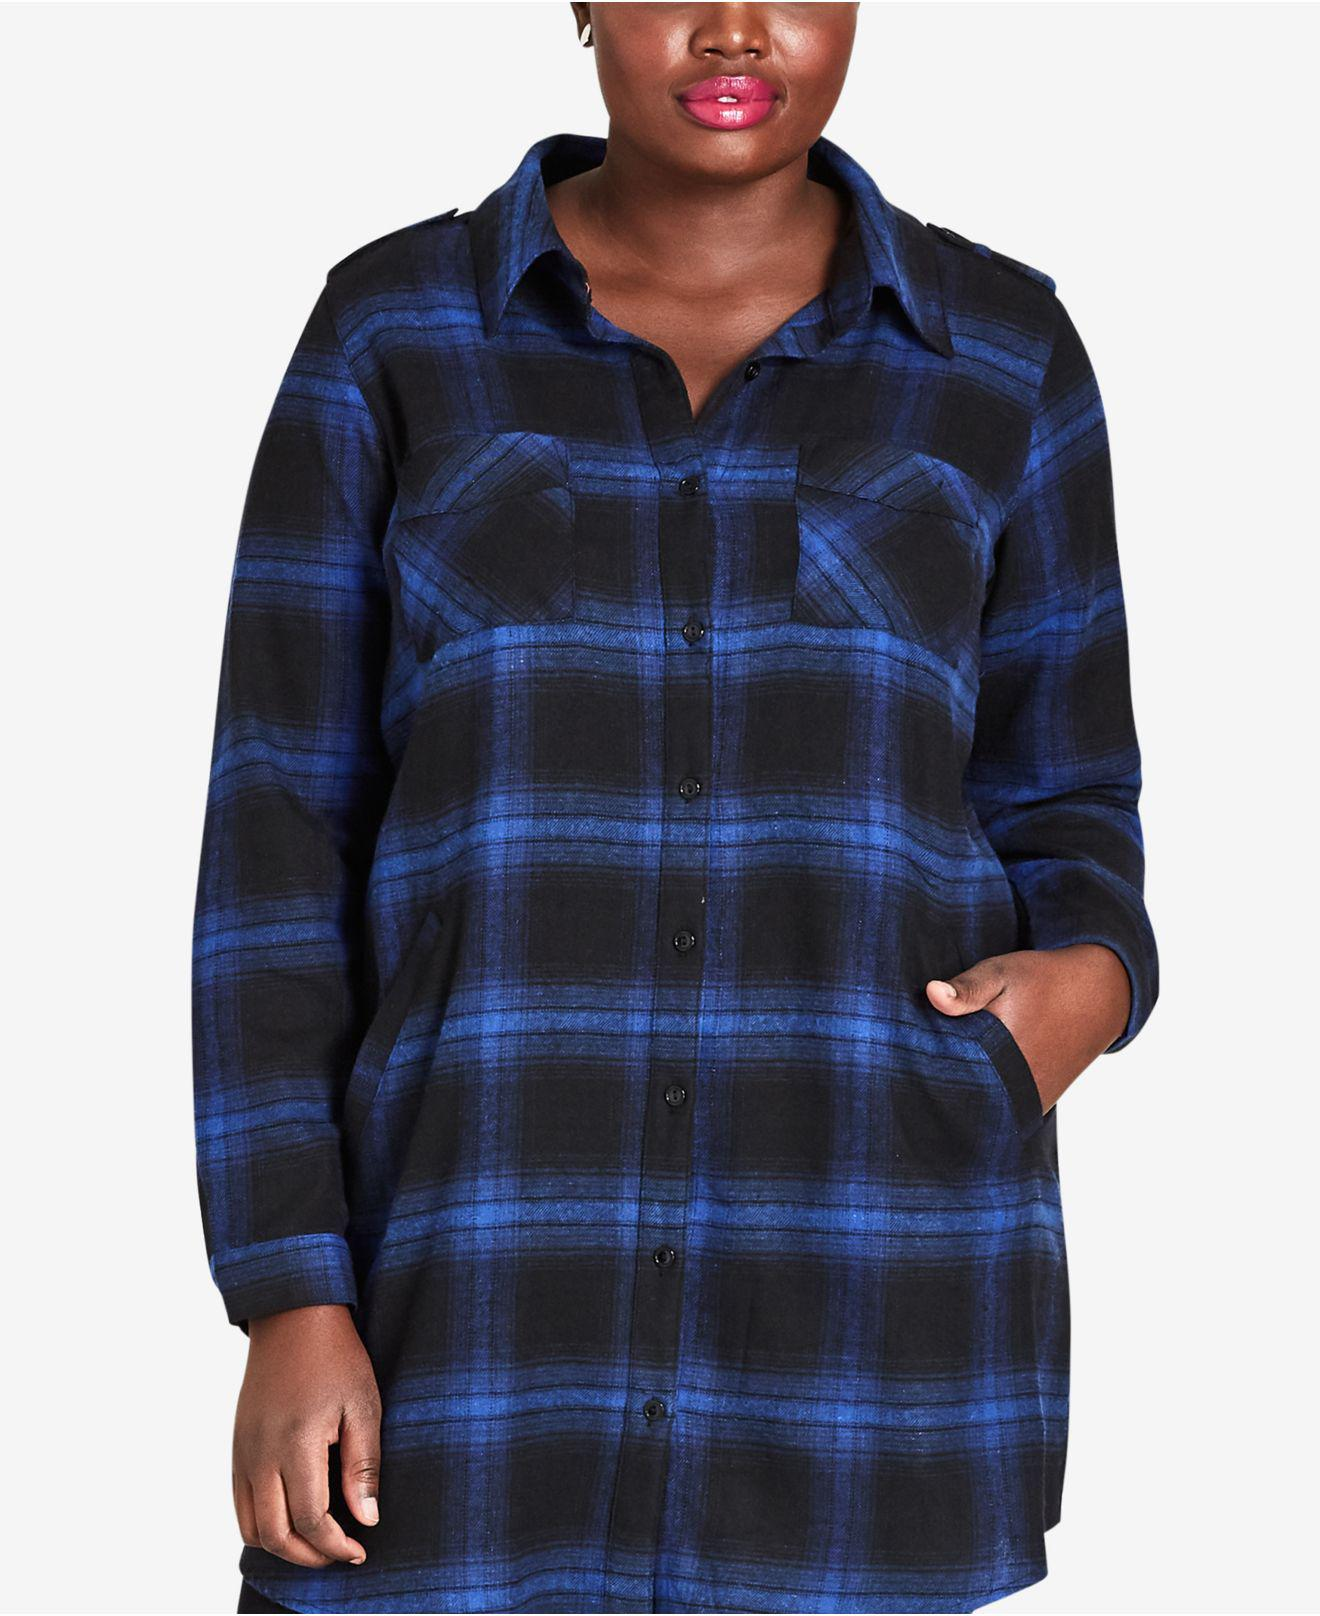 5b8dbe0dfb533 Lyst - City Chic Plus Size Cotton Plaid Tunic Top in Blue